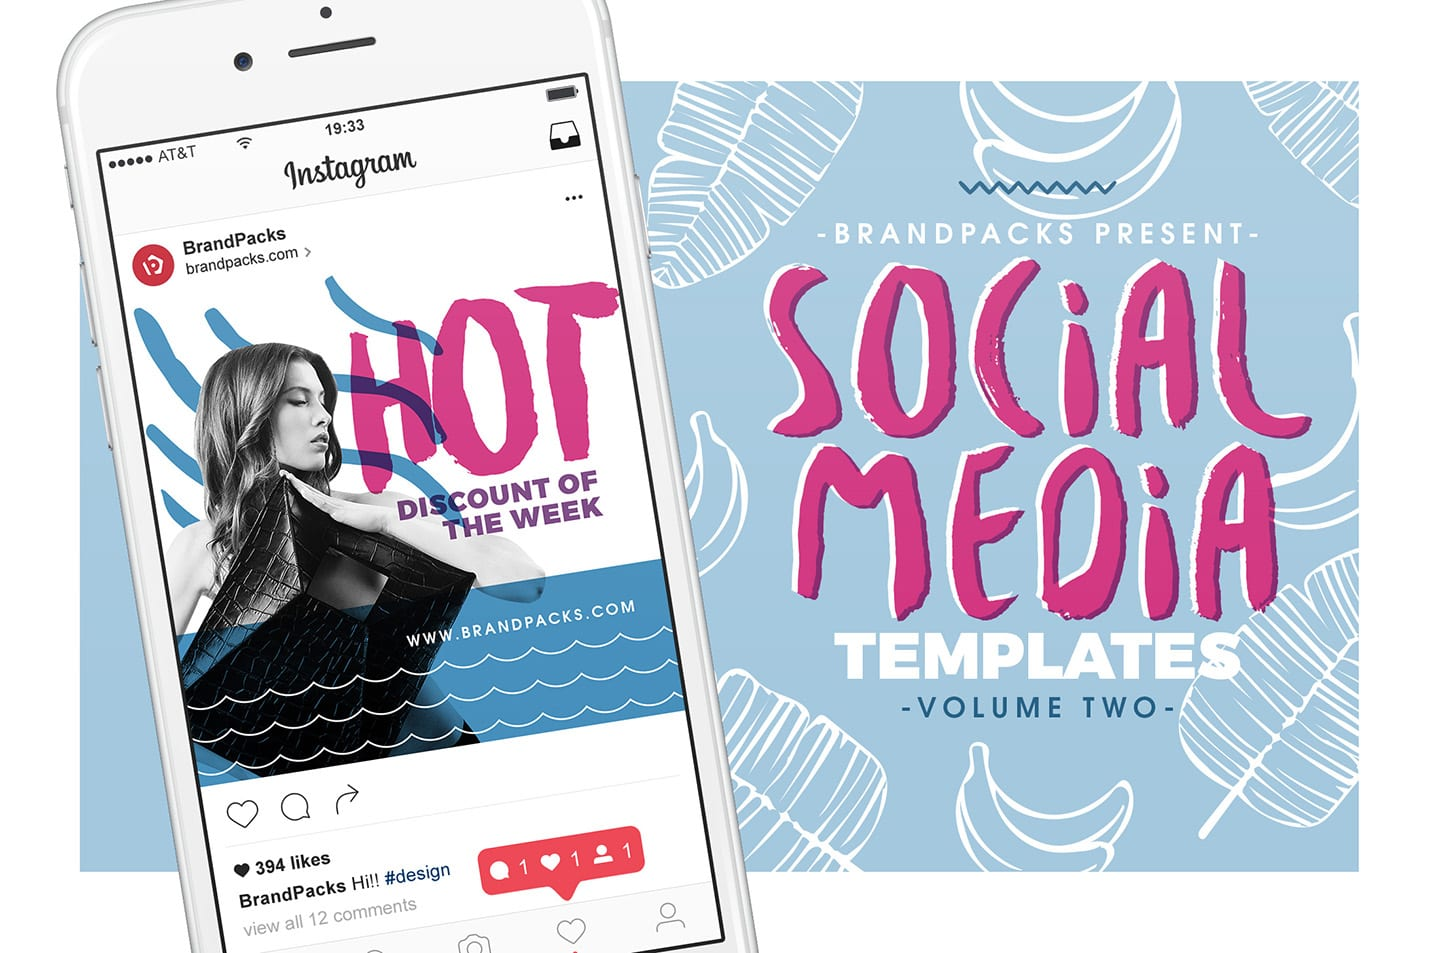 Social Media Templates Pack Vol.2